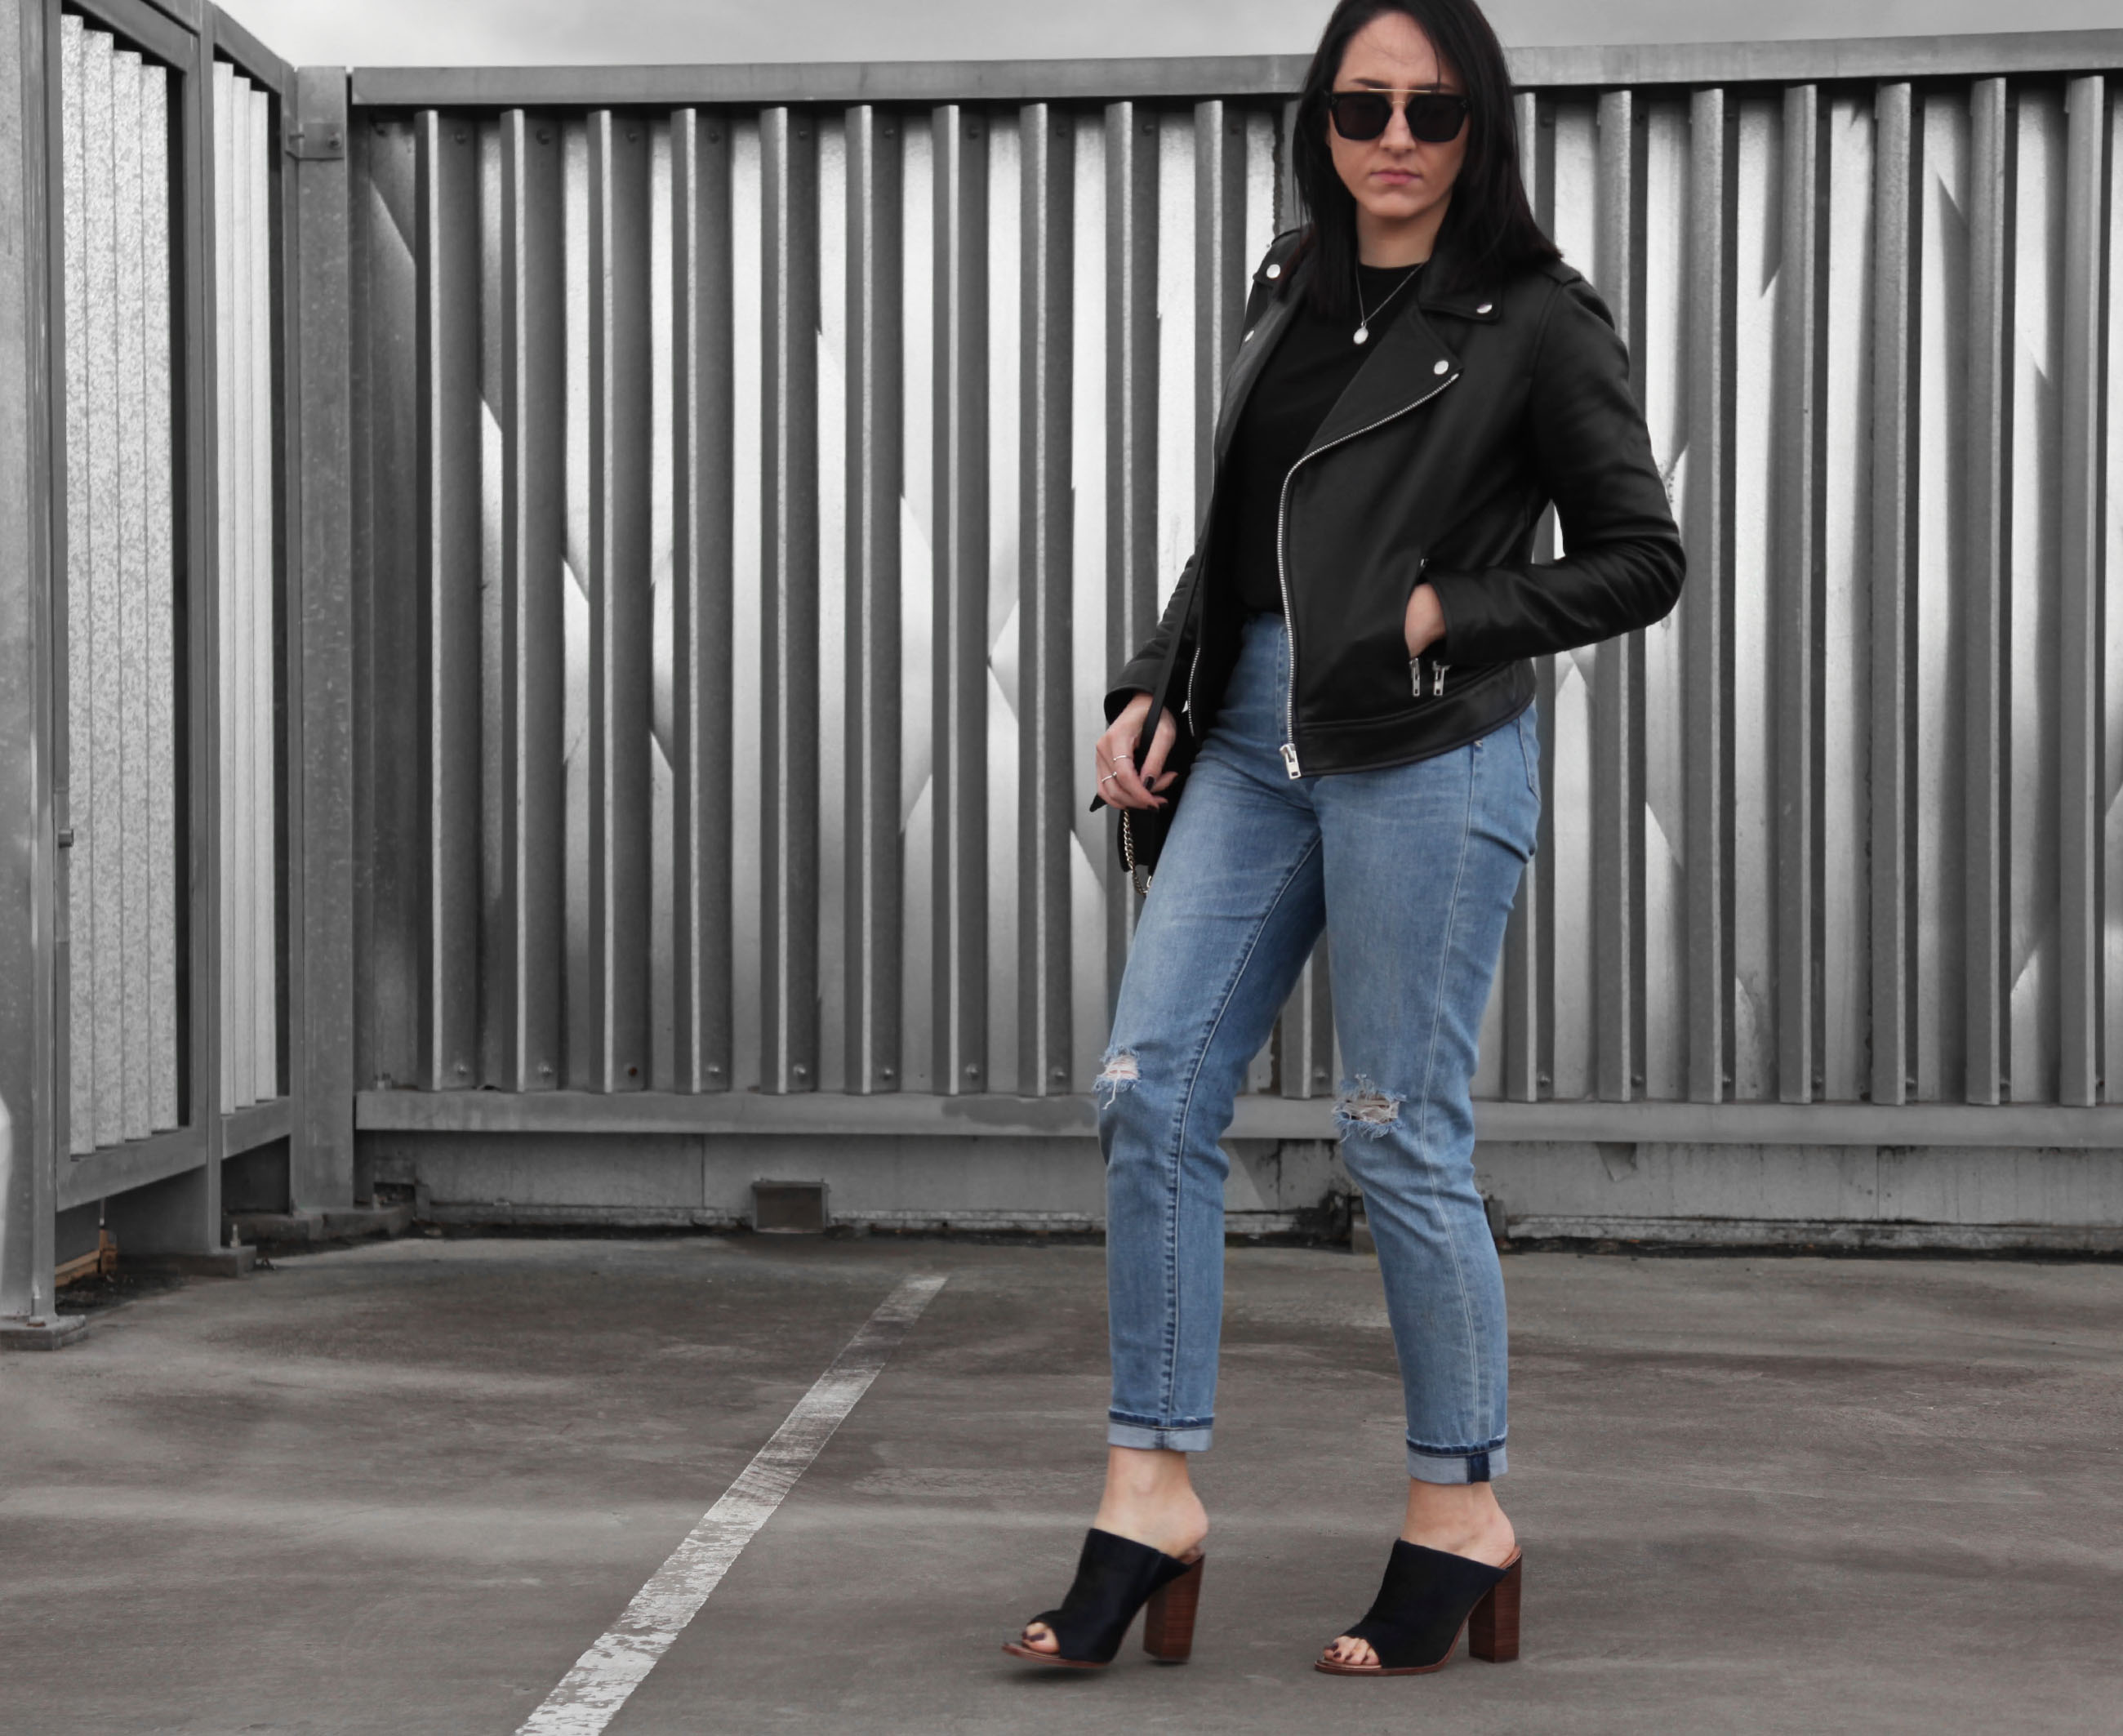 investing in a leather jacket - designbyaikonik 2